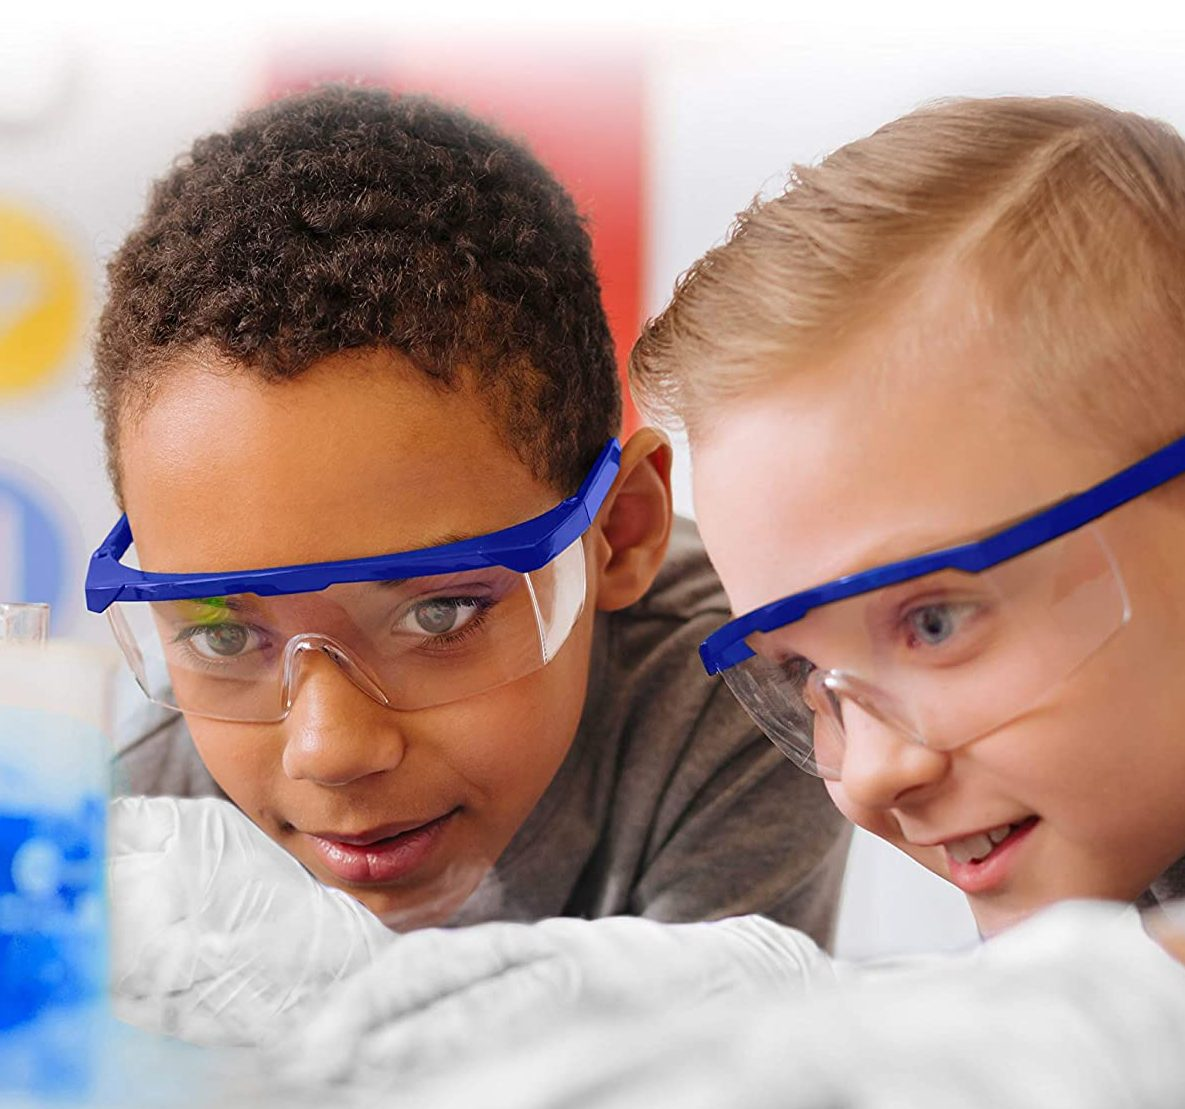 Kids experimenting